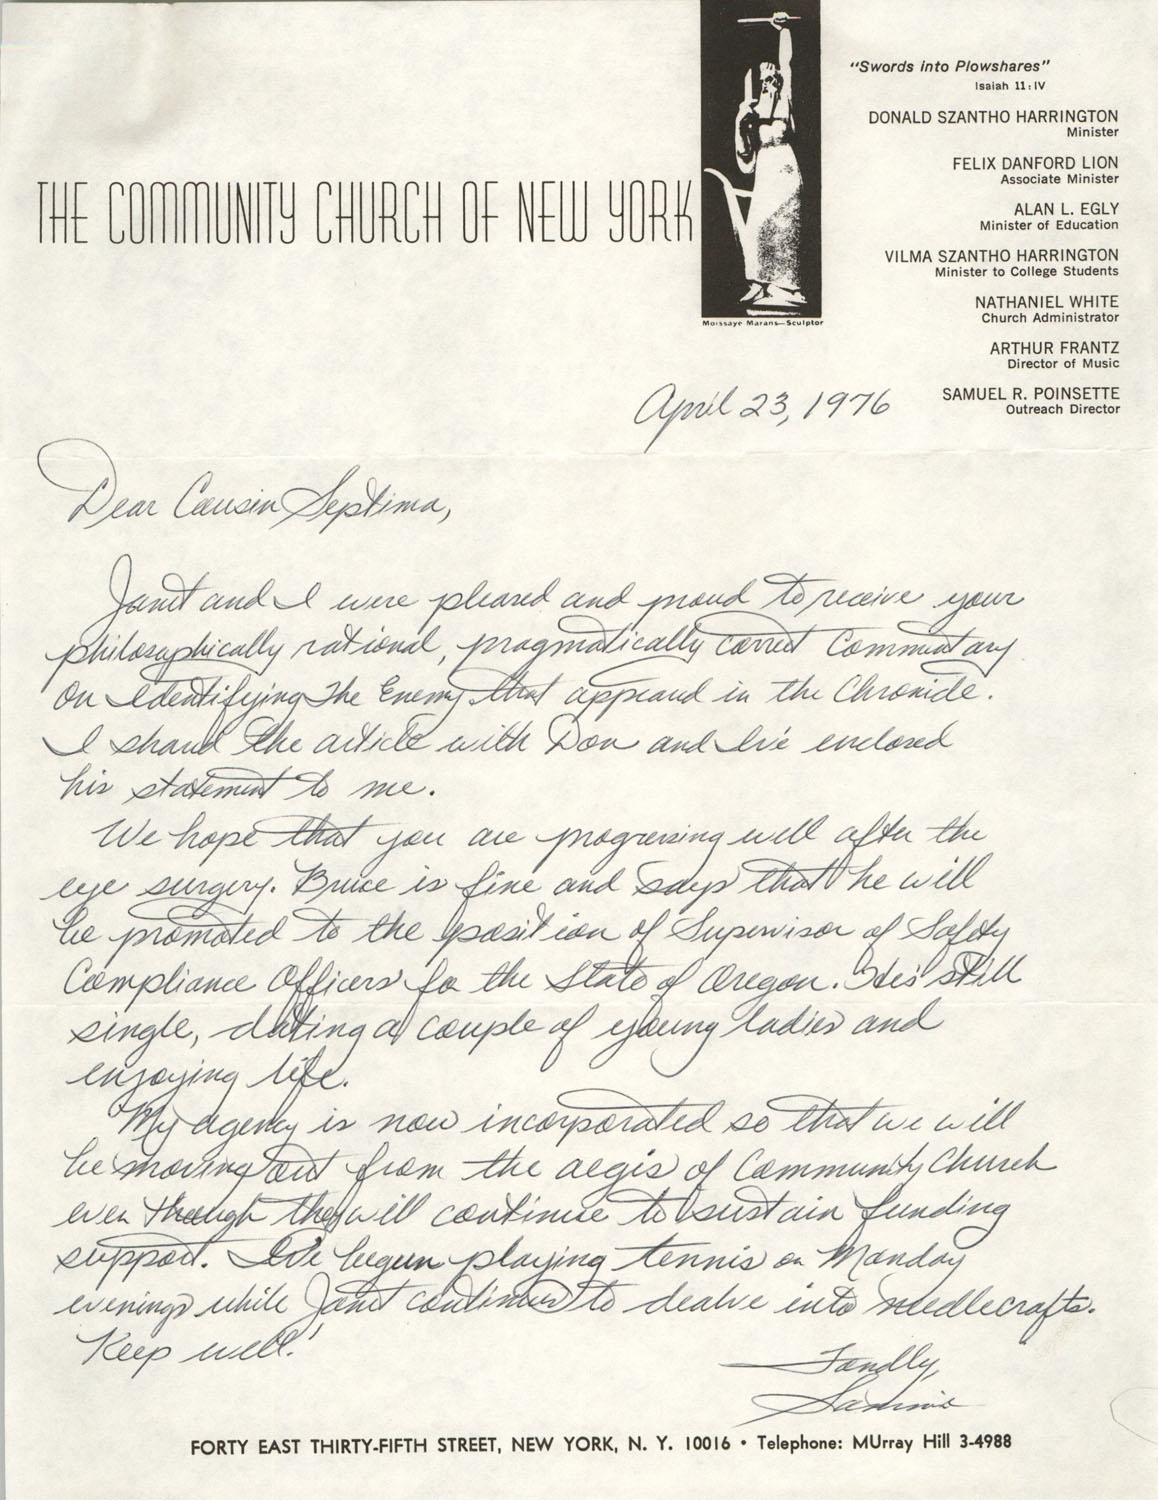 Letter from Samuel R. Poinsette to Septima P. Clark, April 23, 1976